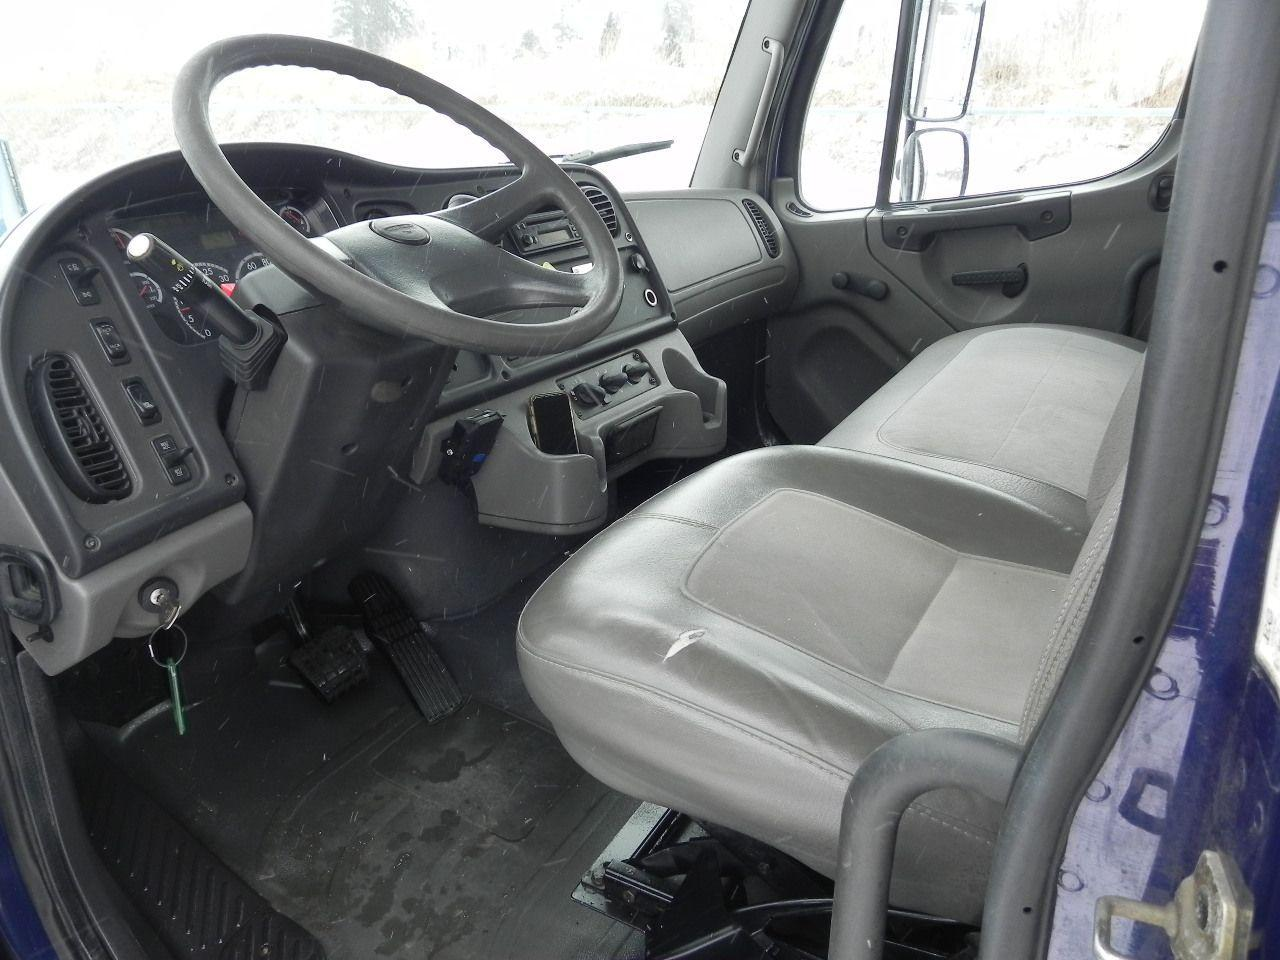 2005 Freightliner M2 Business Class